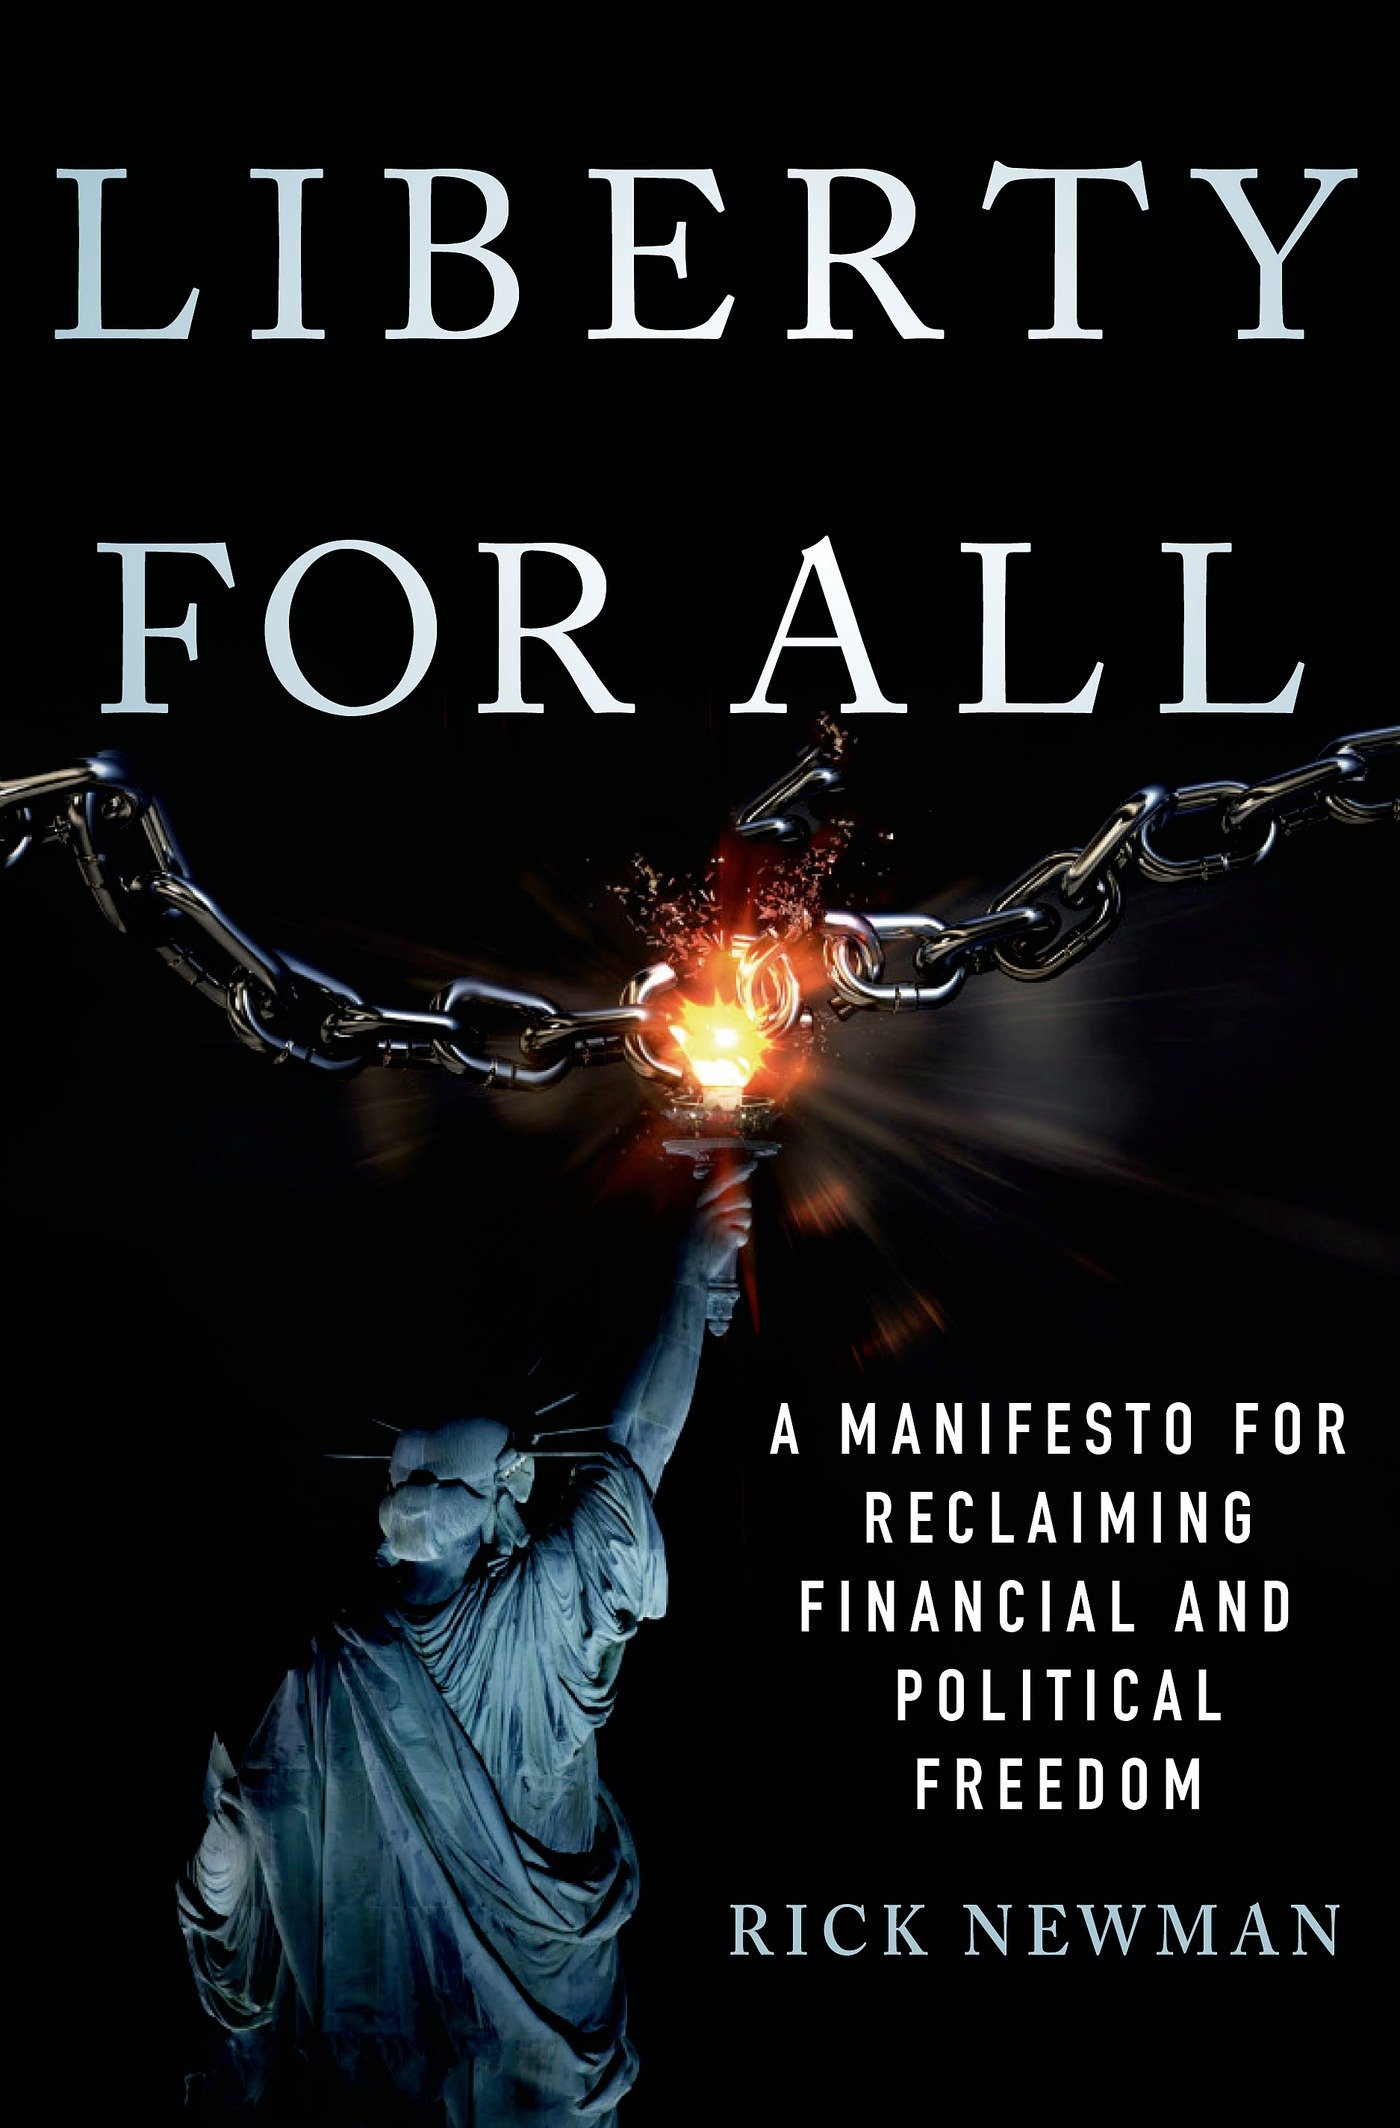 Liberty-for-all--a-manifesto-for-reclaiming-financial-and-political-freedomjpg-original